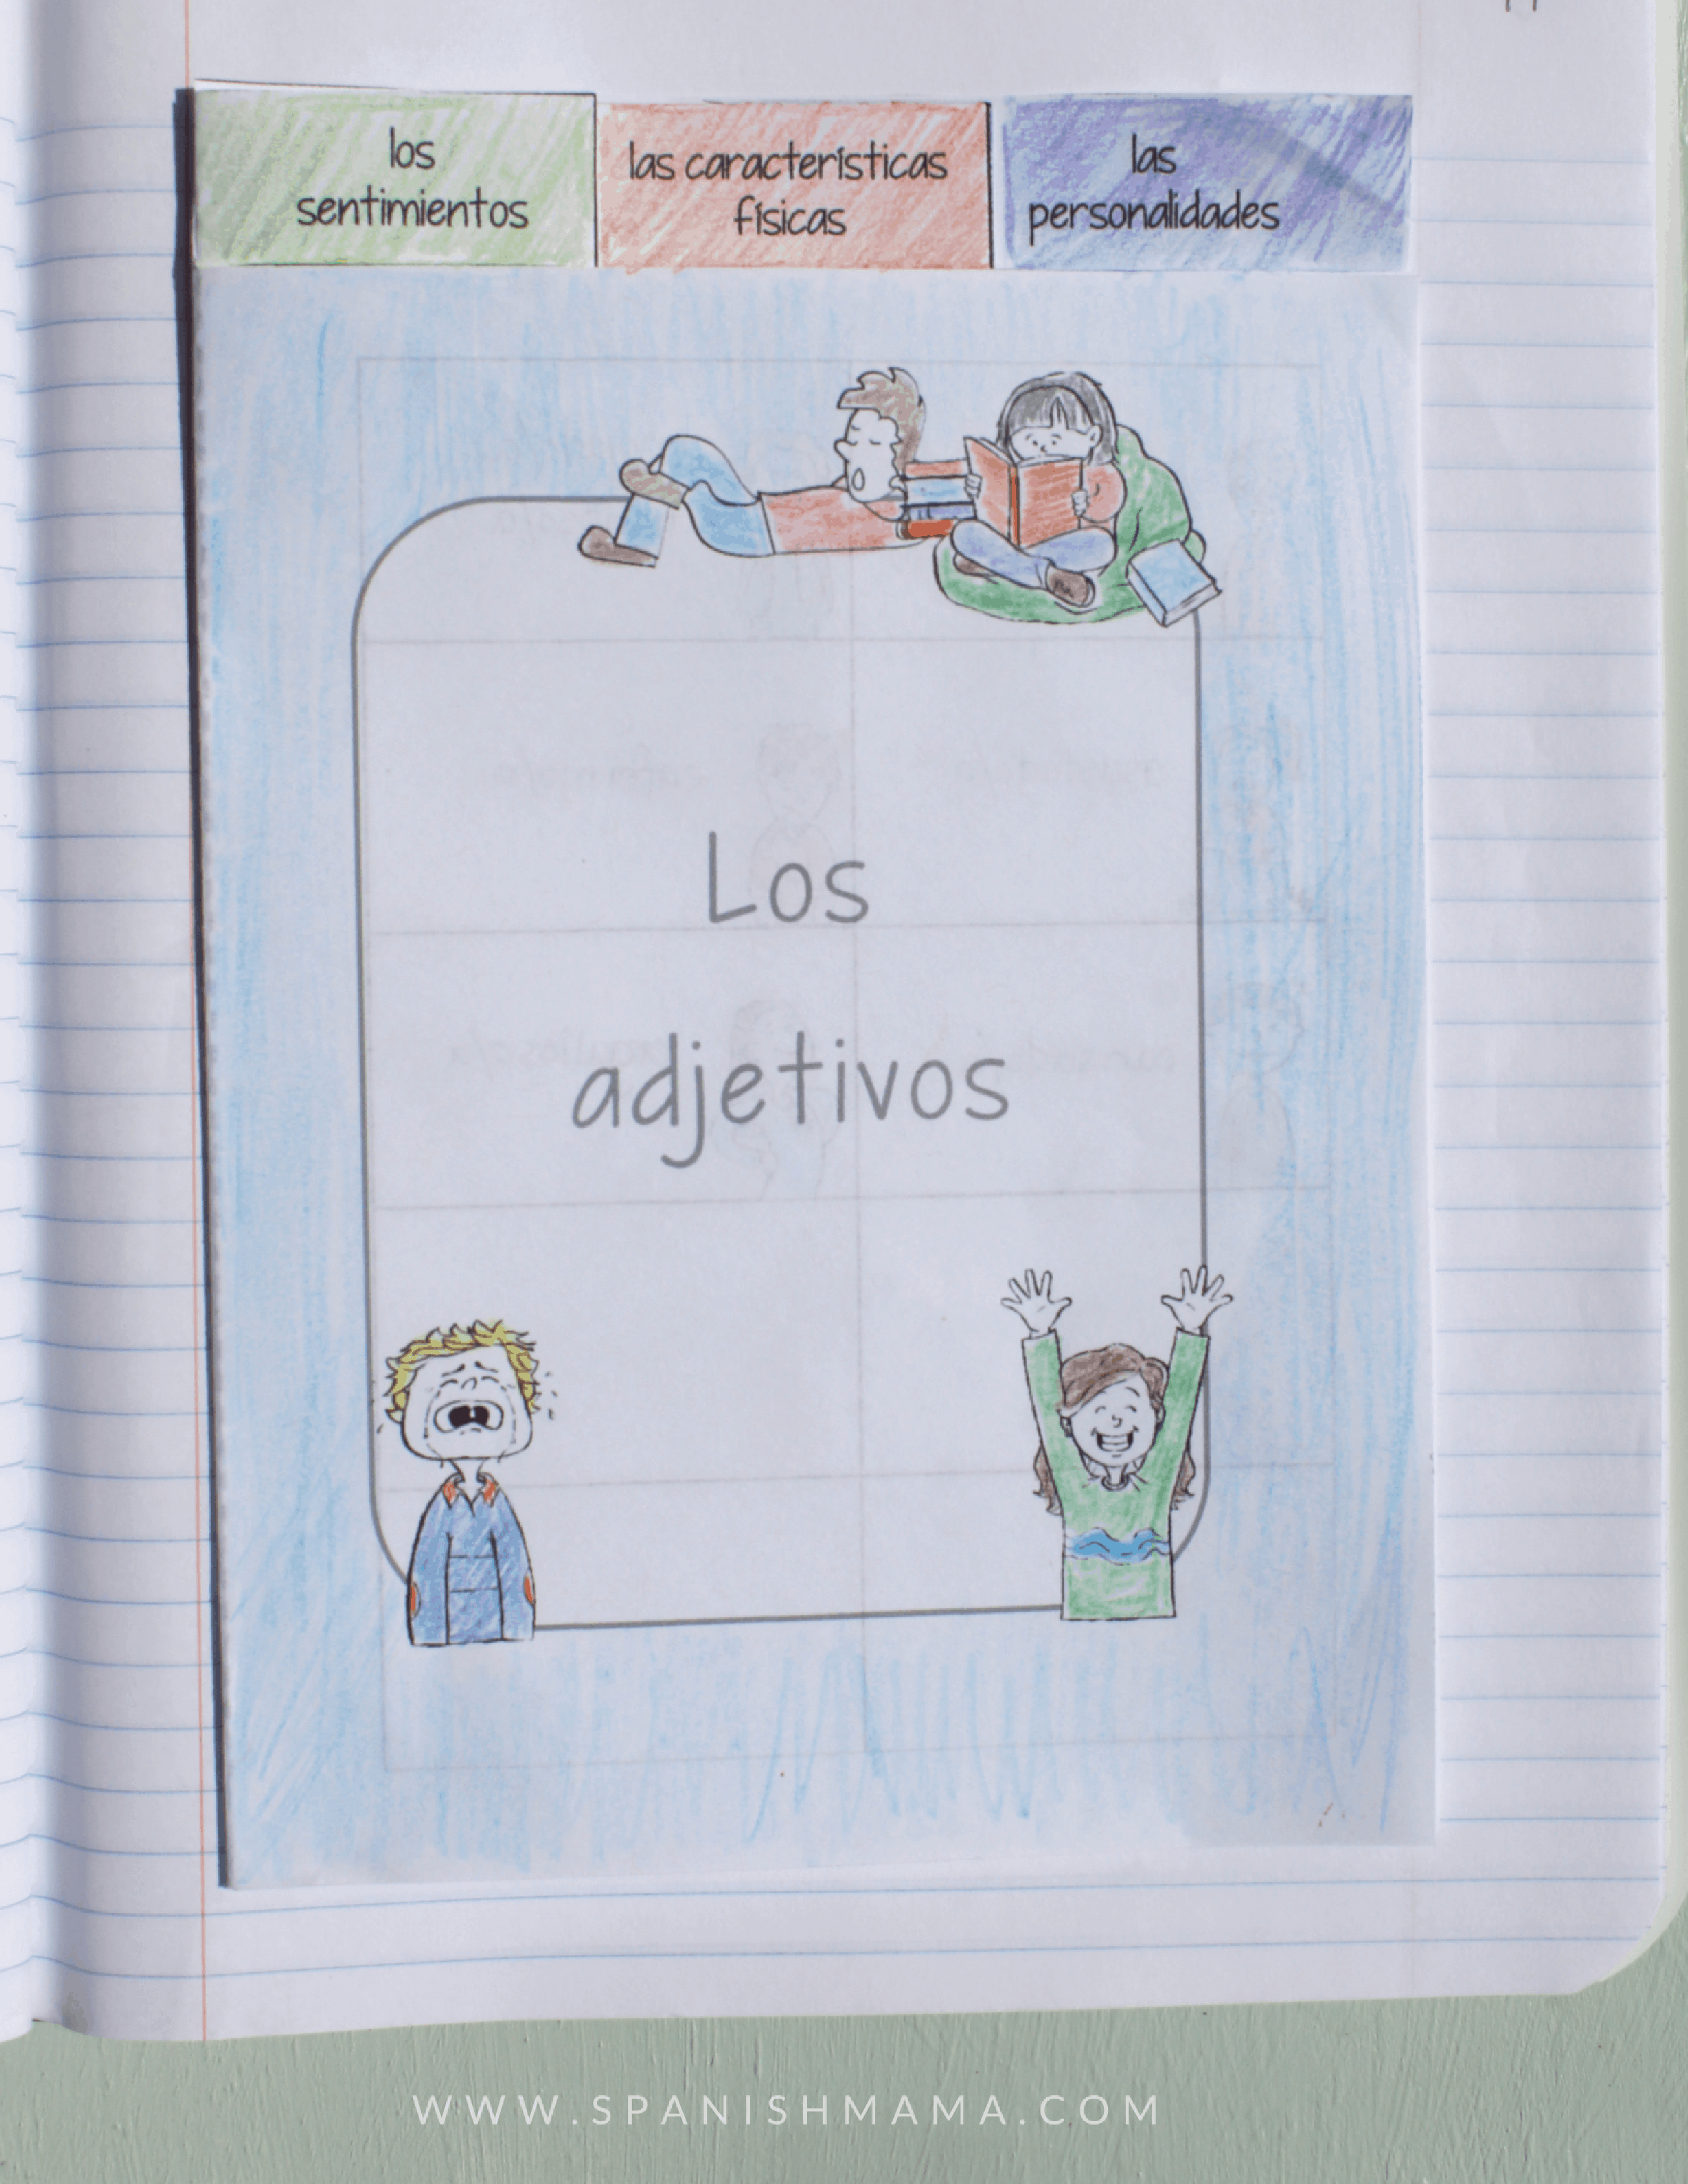 Spanish Notebook Section 4 Vocabulary